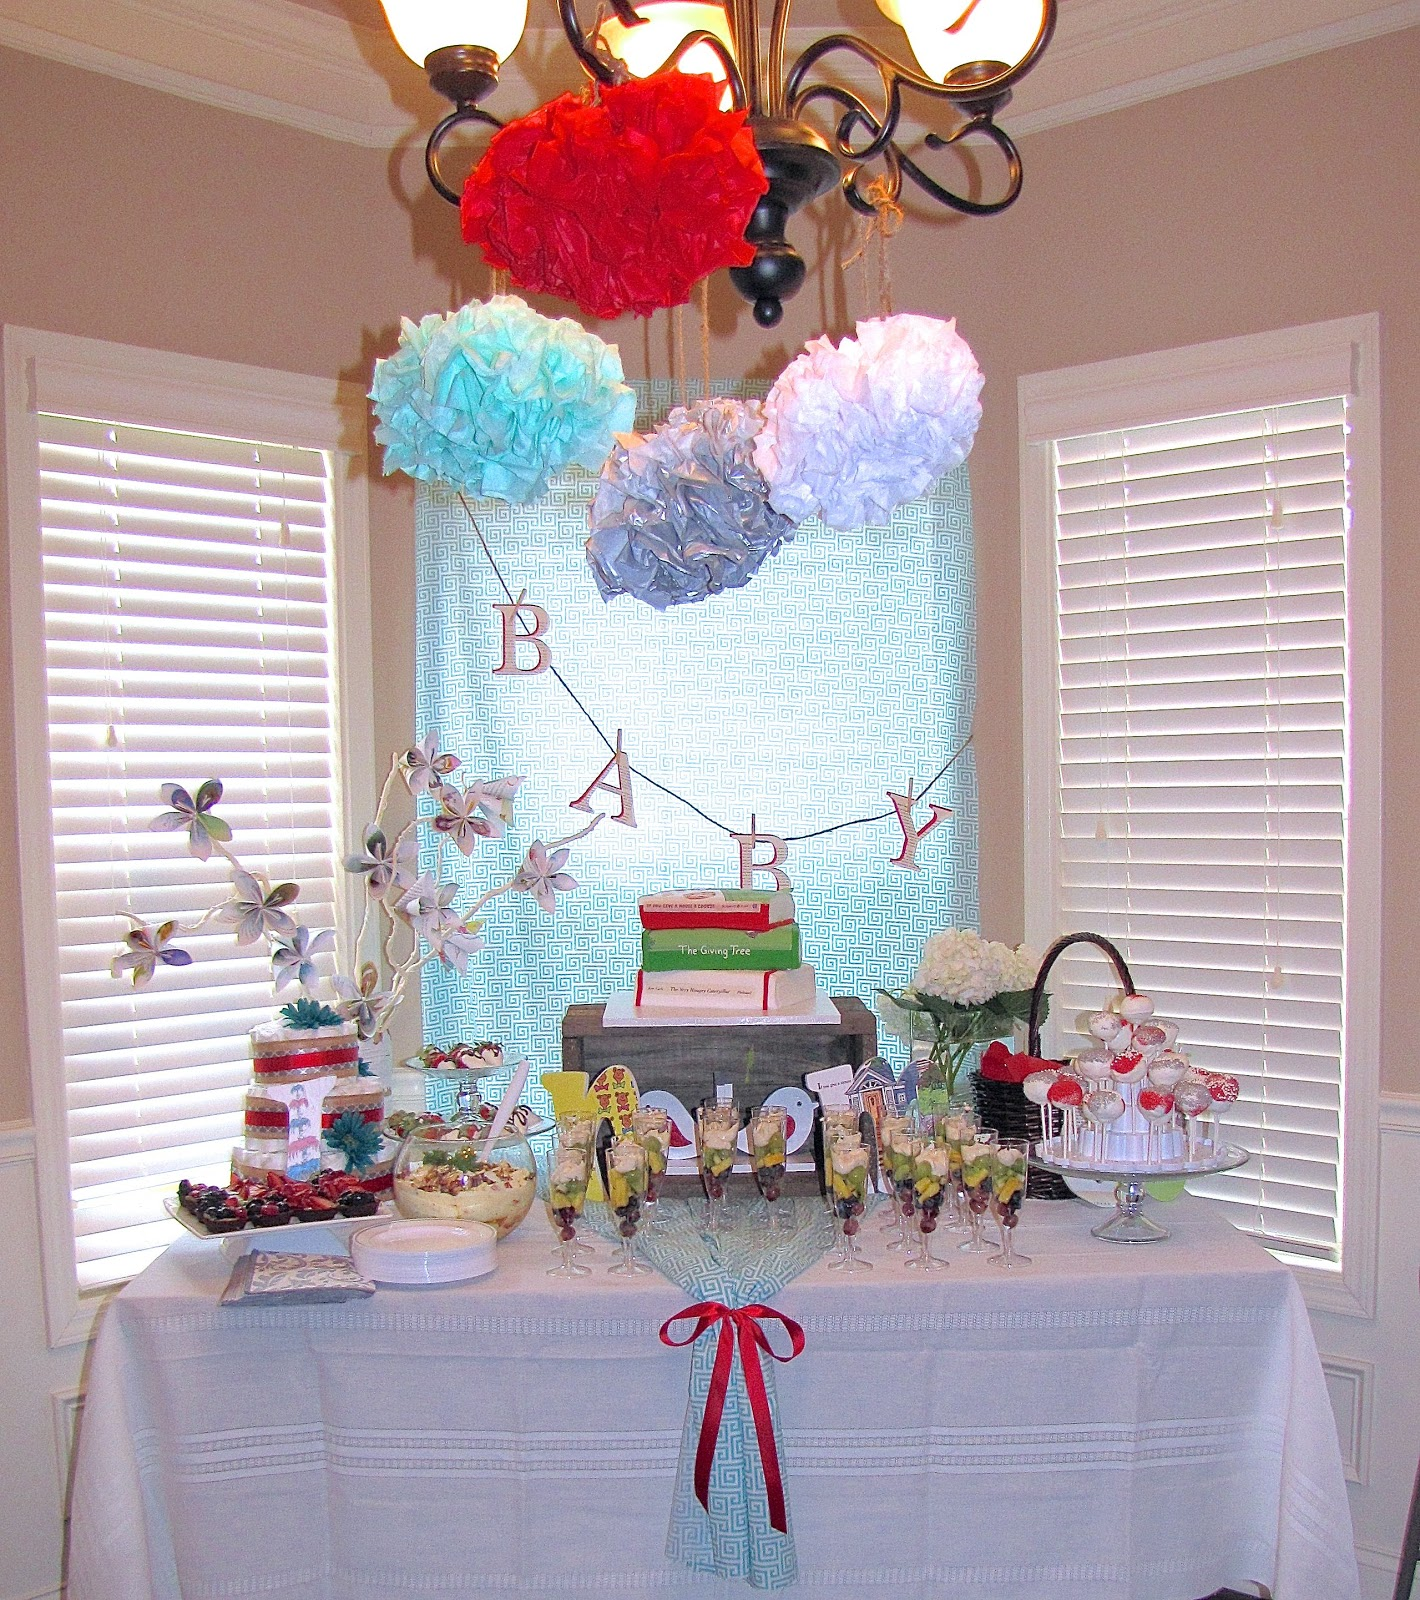 The Modest Homestead: Party Spotlight: Book Themed Baby Shower